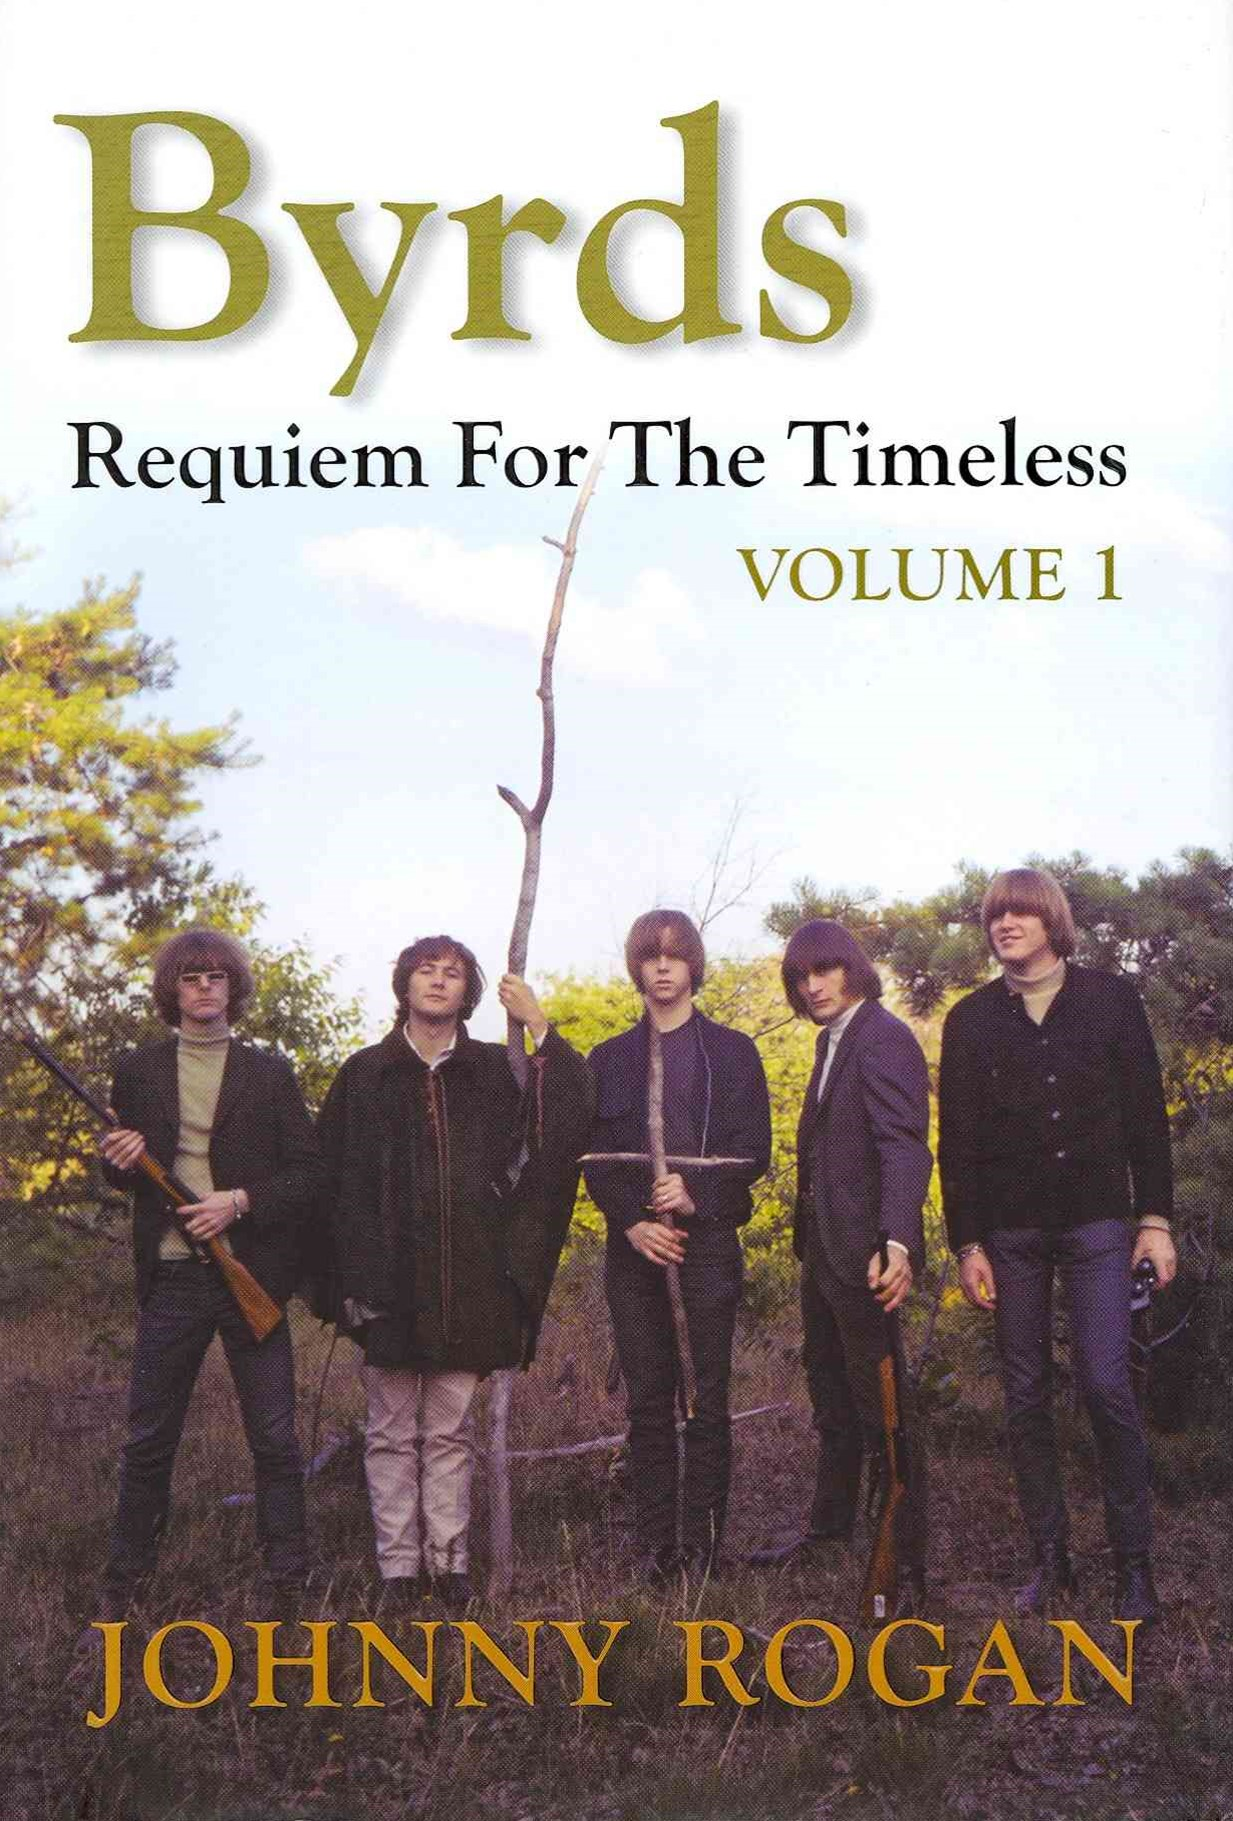 Byrds: Requiem for the Timeless: Volume 1